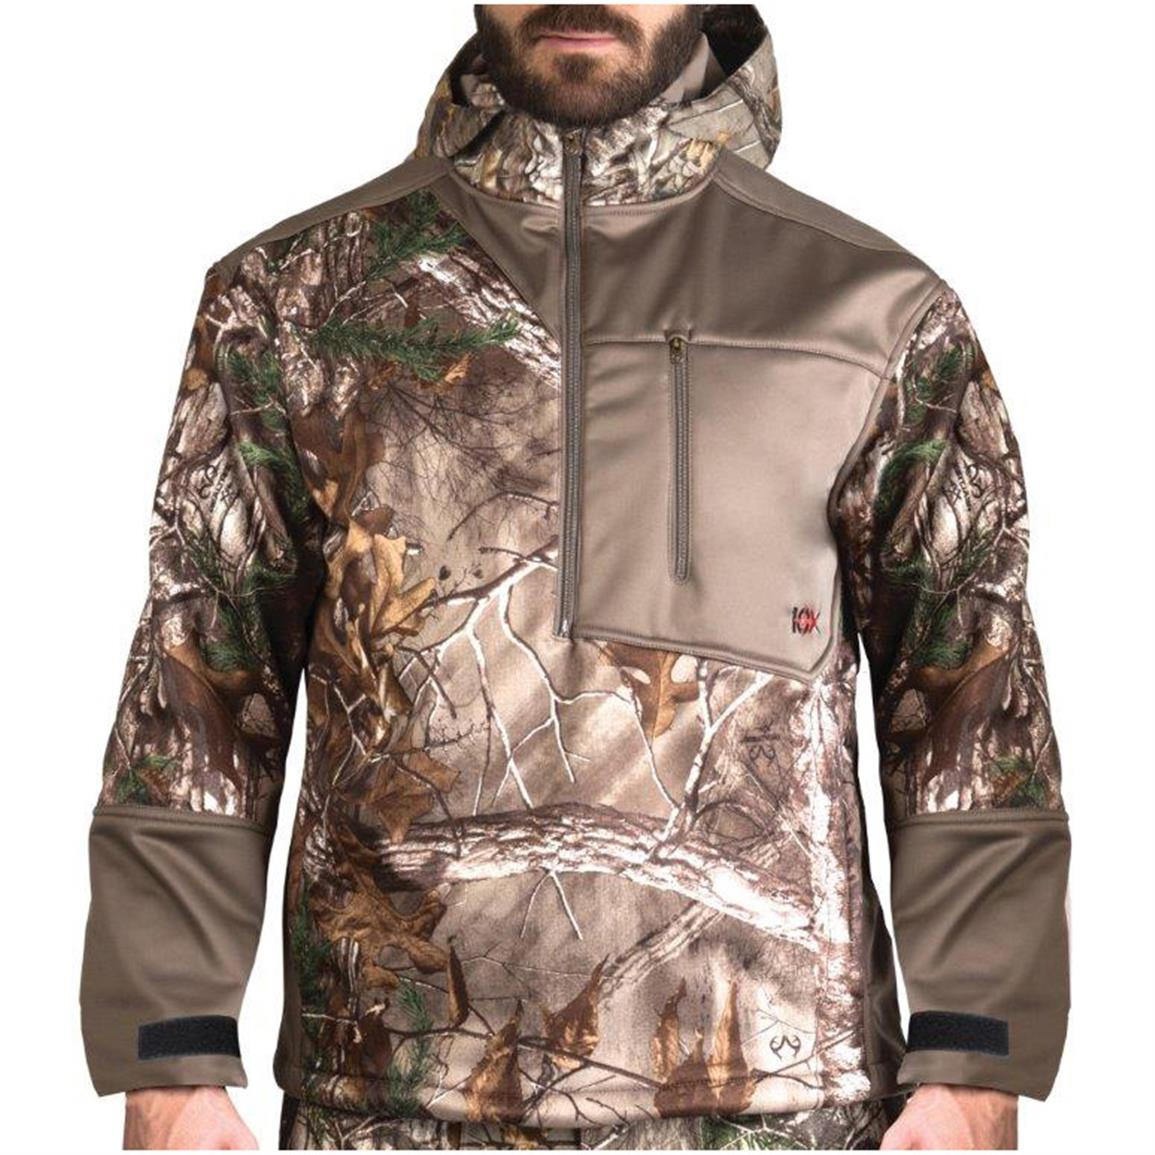 10X Men's Tech Hoodie, Mossy Oak Break-Up Country